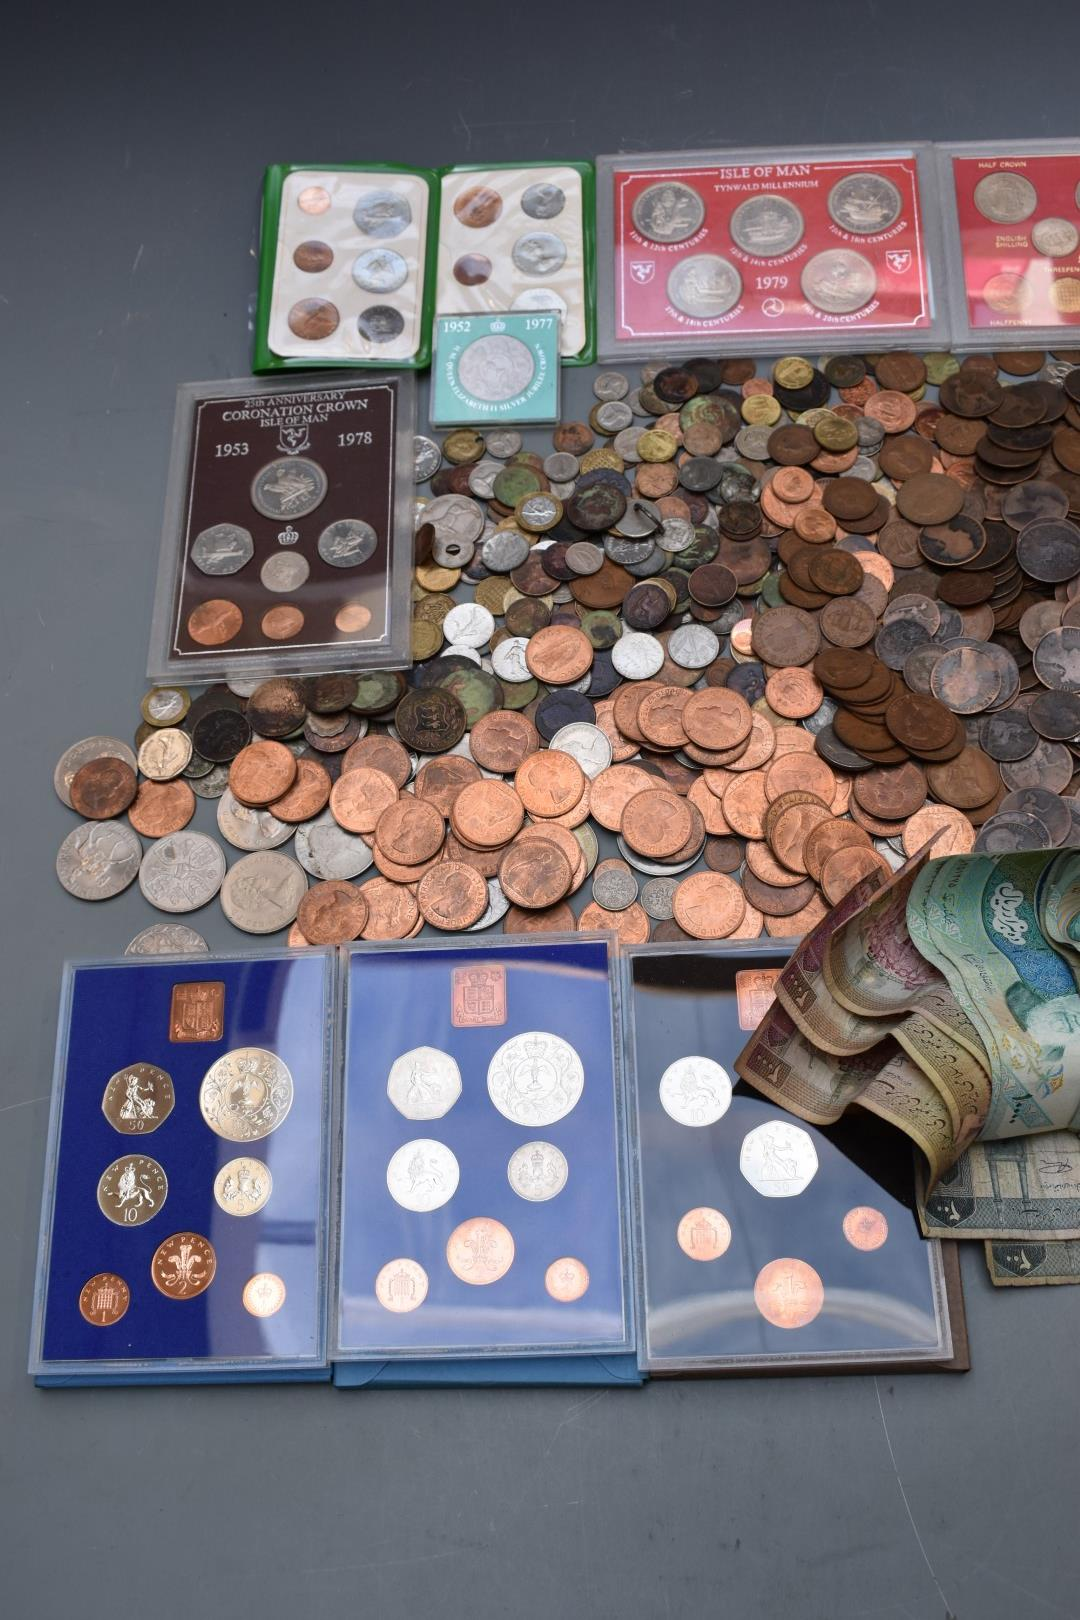 Sundry UK and overseas coinage and banknotes, George III onwards, some coin sets, modern crowns etc - Image 2 of 3